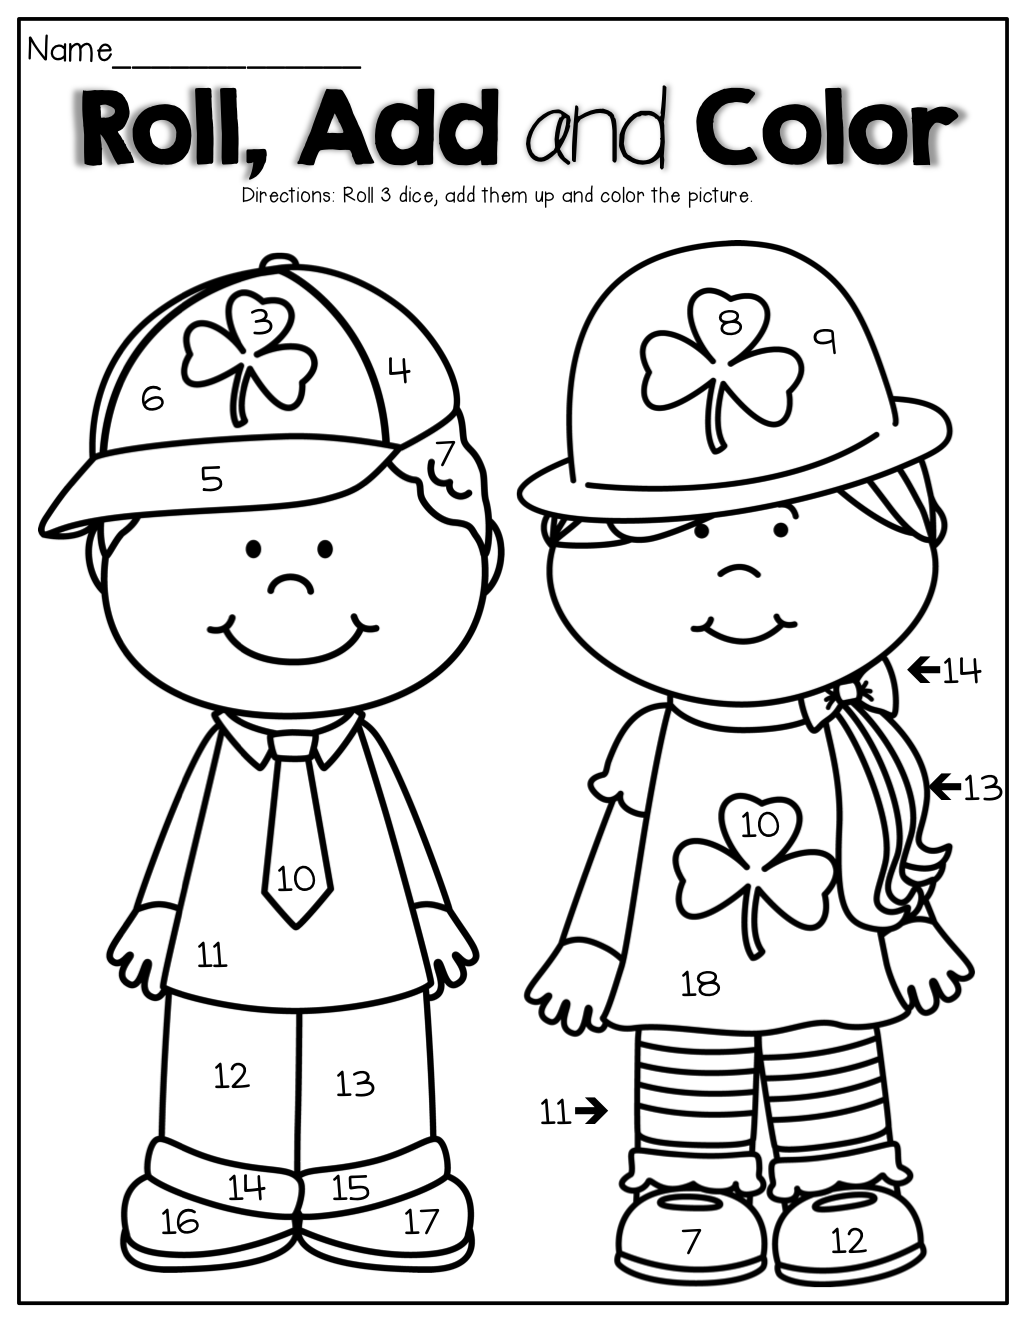 Roll Add And Color Roll The Dice Add Them Up And Color The Picture March Kindergarten Spring Classroom Fun Worksheets [ 1325 x 1024 Pixel ]